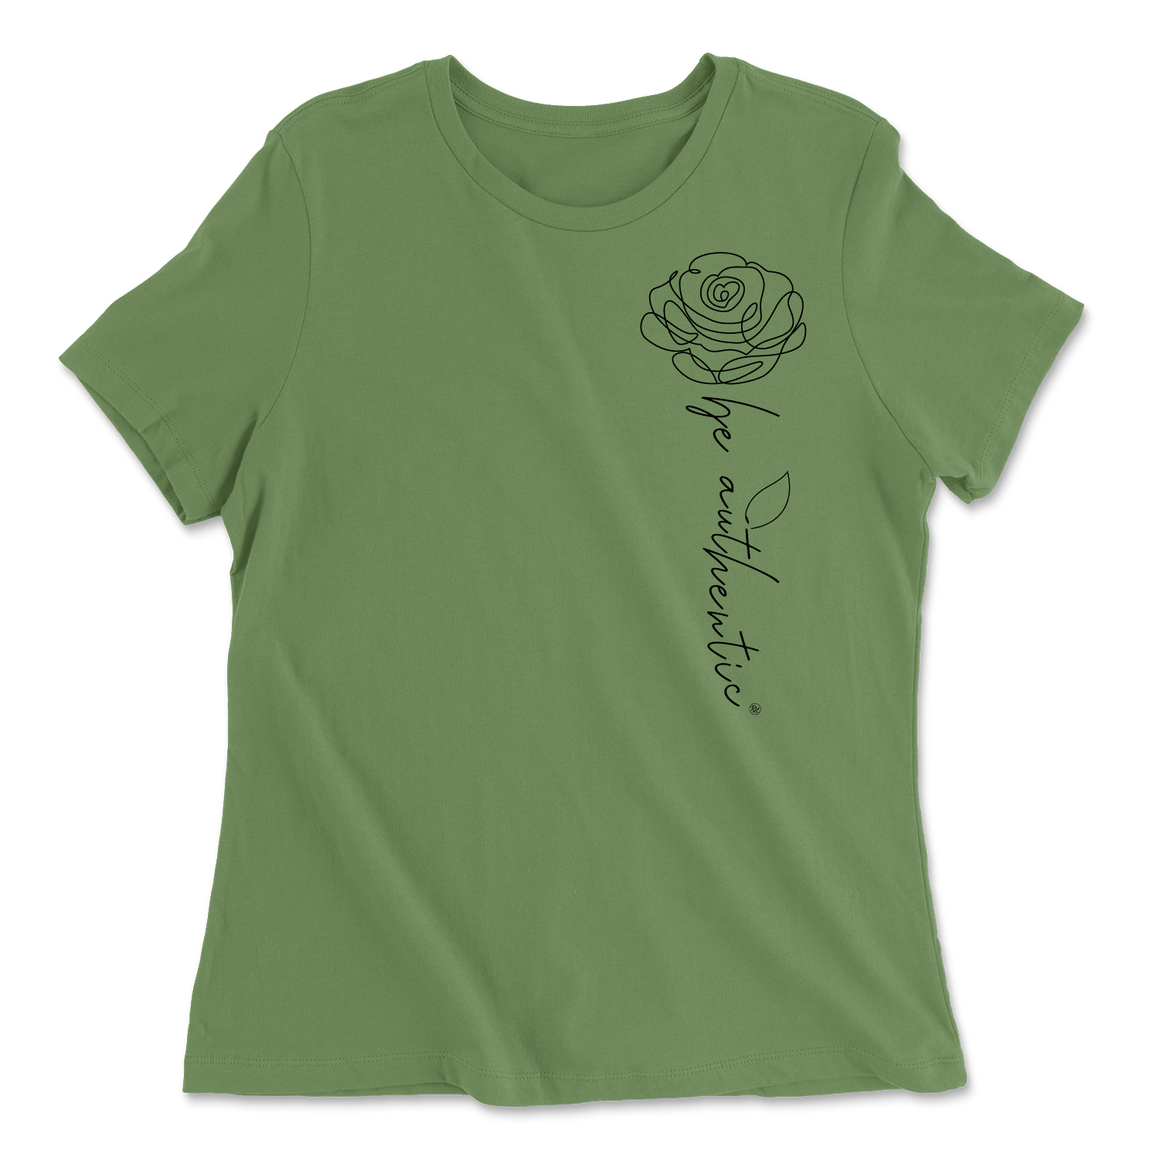 Be Authentic - Green - Women's Tee